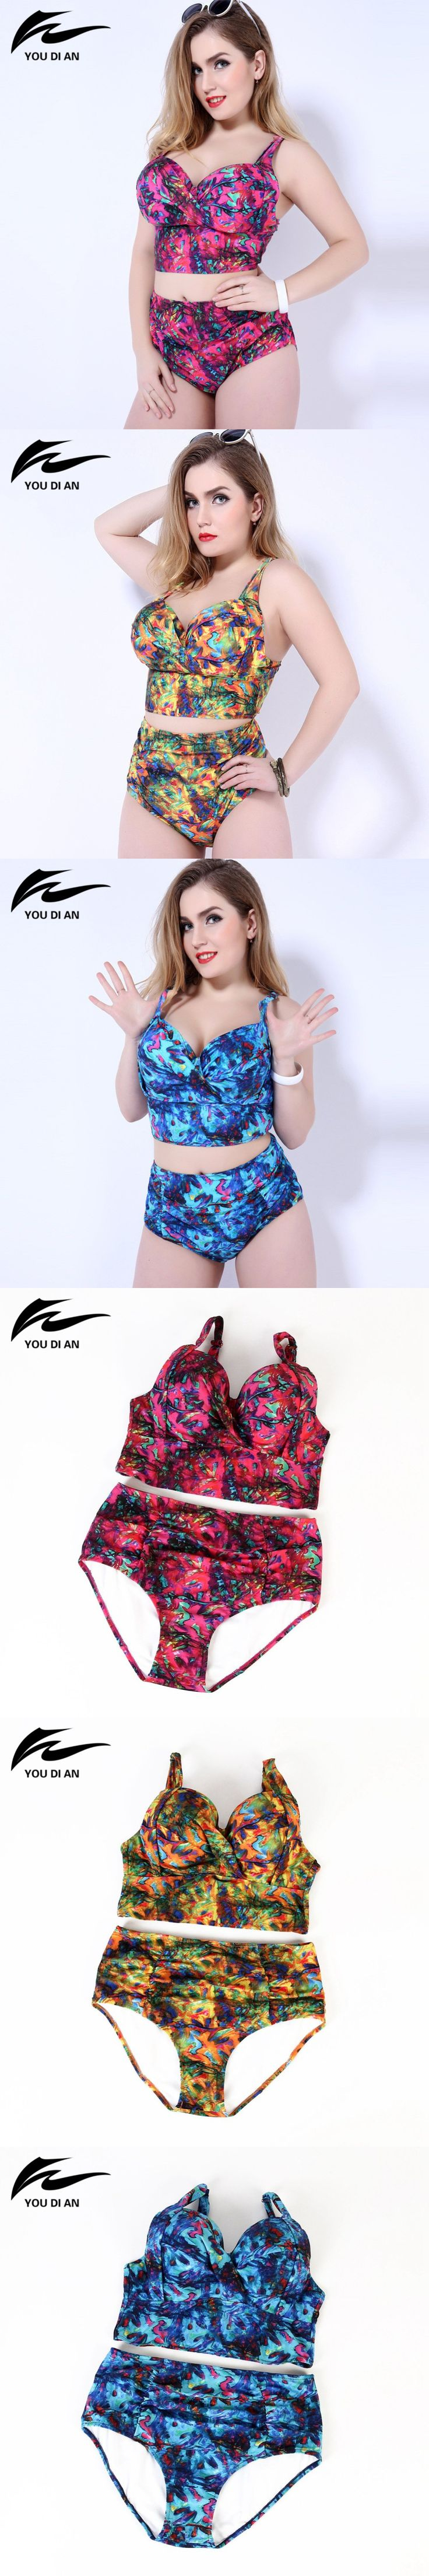 Big bust high waist printed bikinis 2016 women plus size swimwear Women Swimsuit push up Biquini Brazilian Bikini bathing suit $23.9